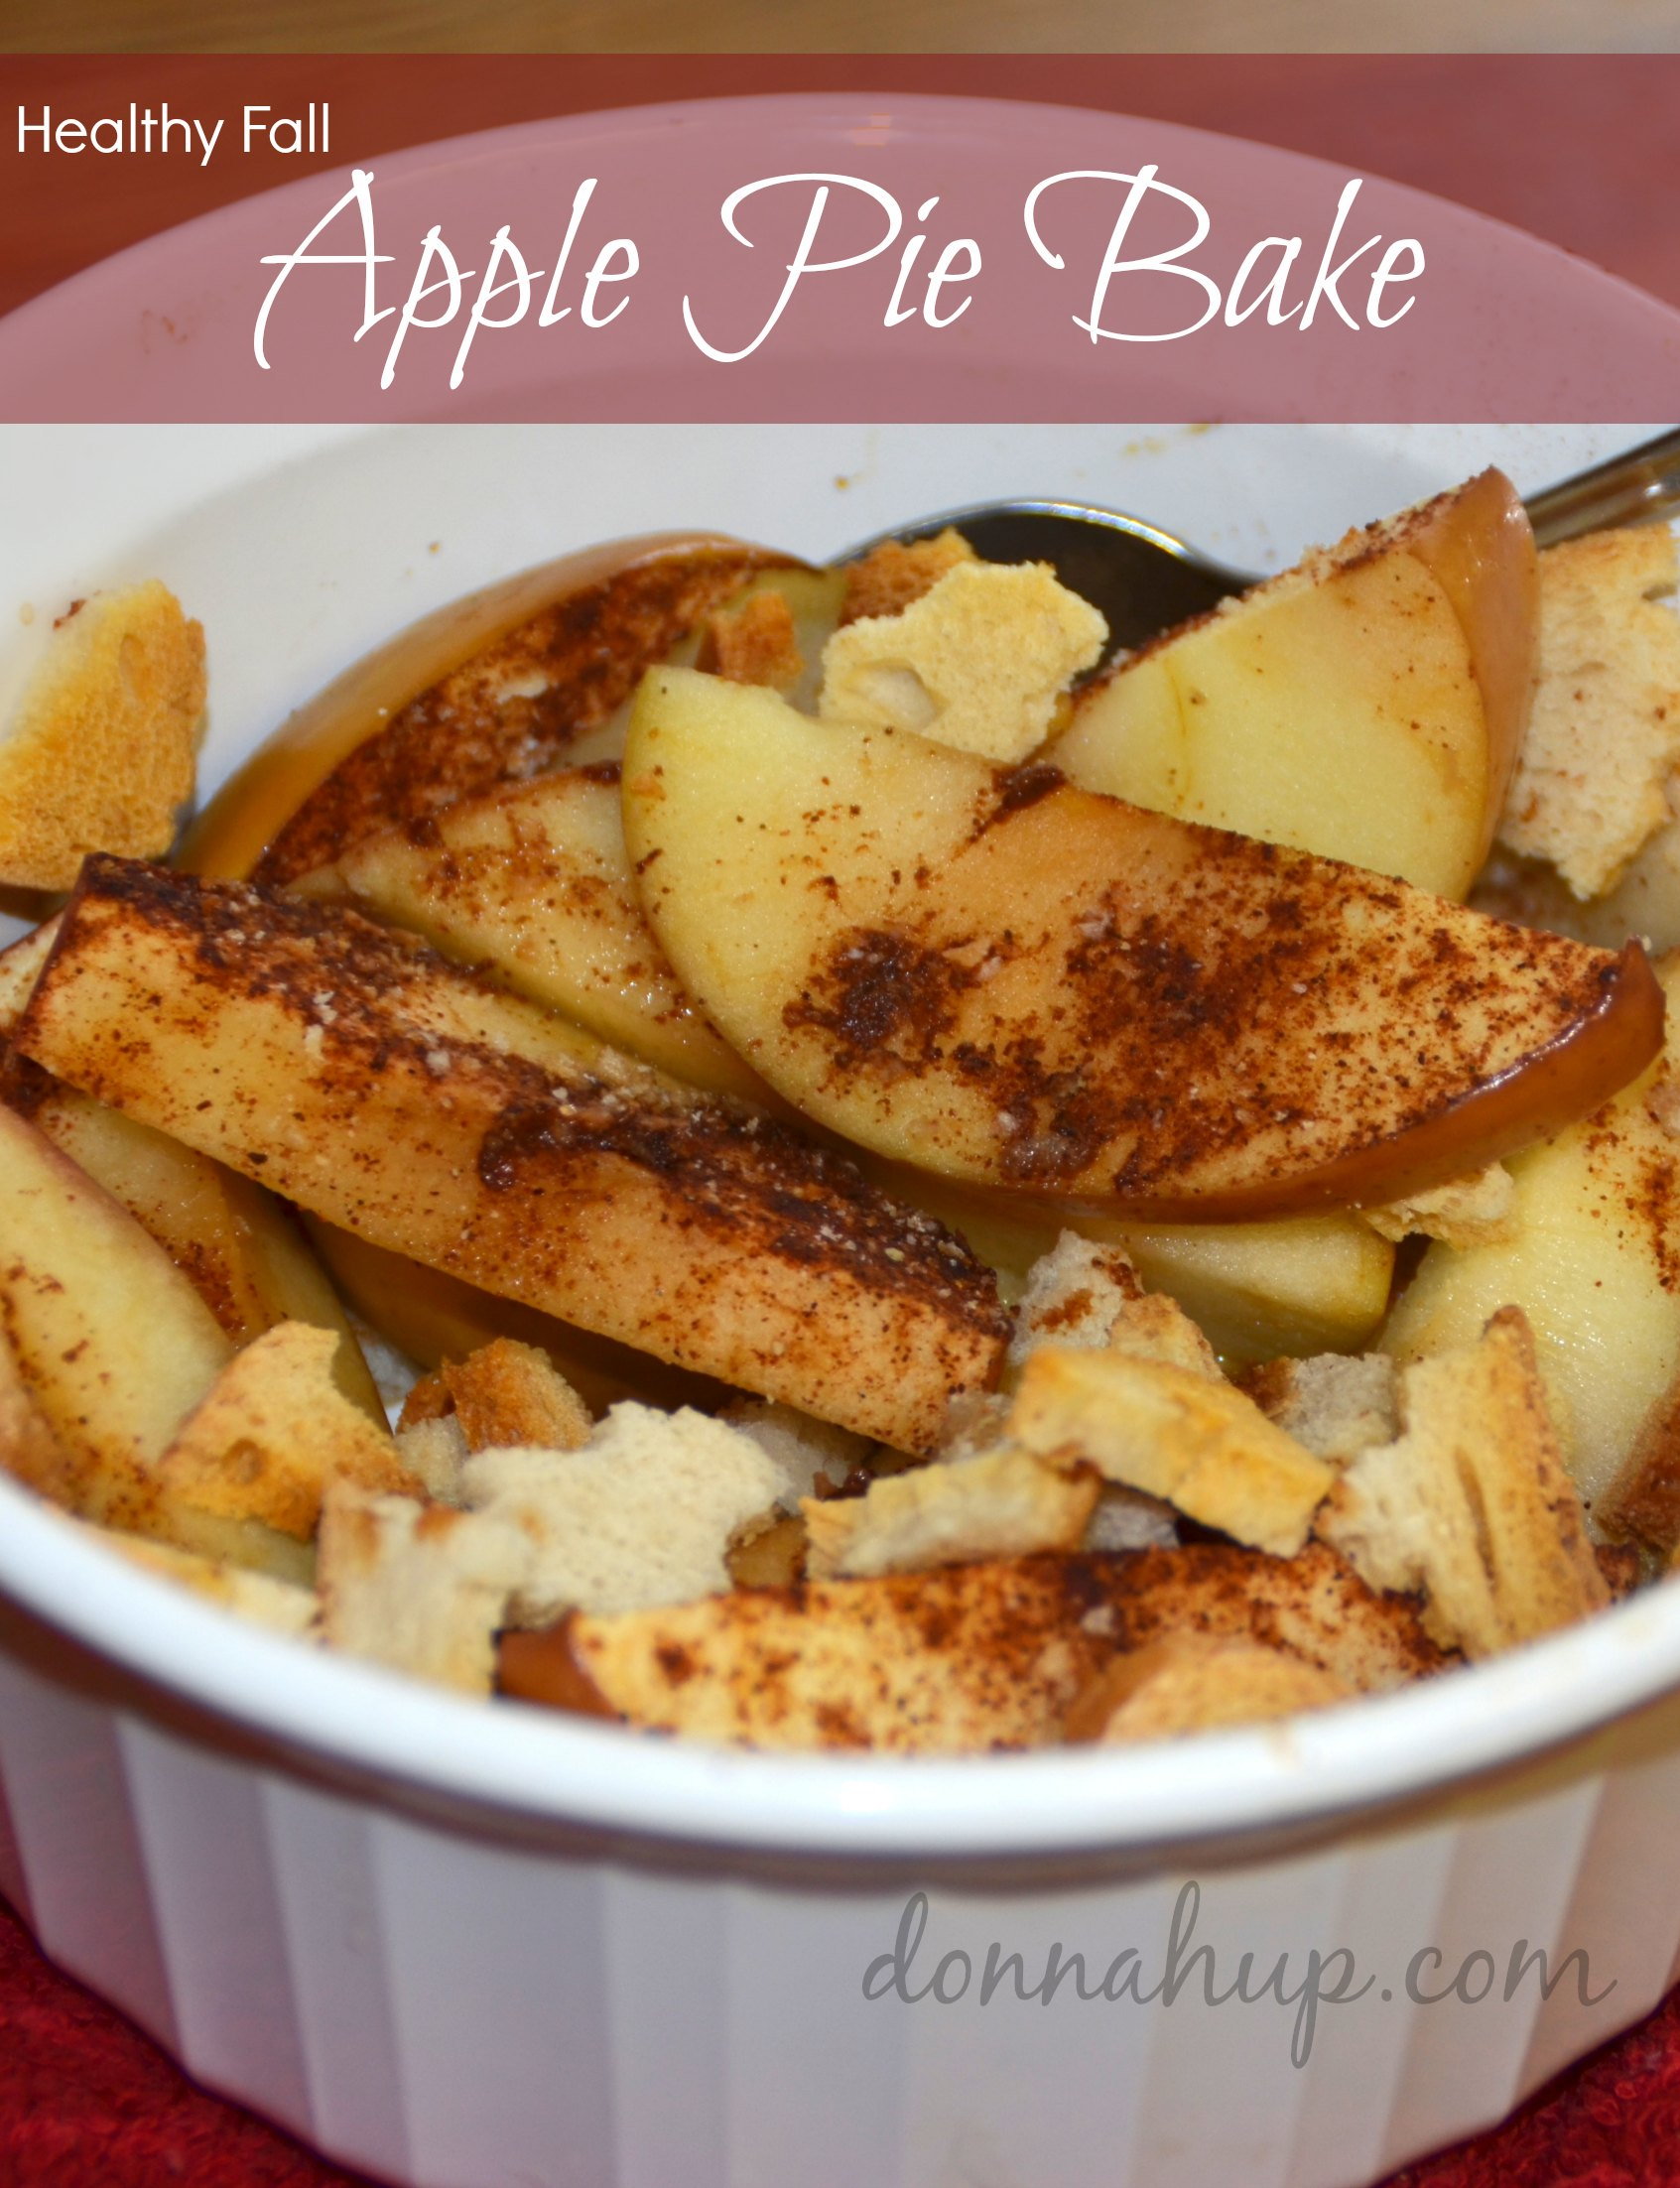 Healthy Apple Pie Bake